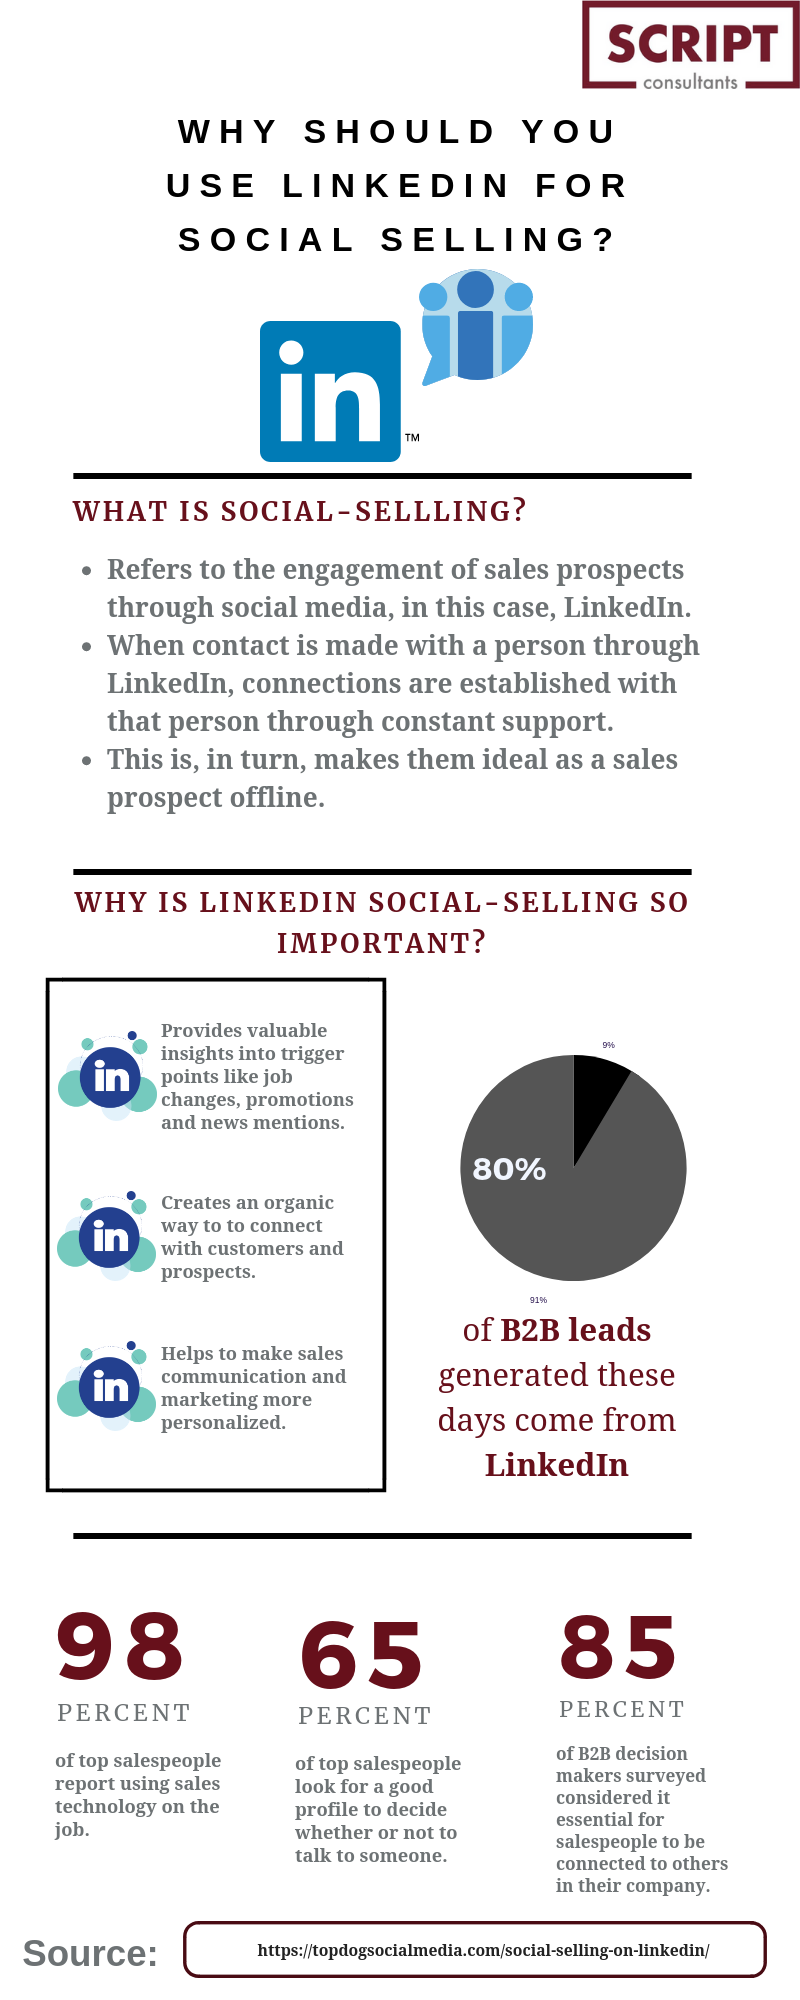 Why is LinkedIn Social-Selling So Important?